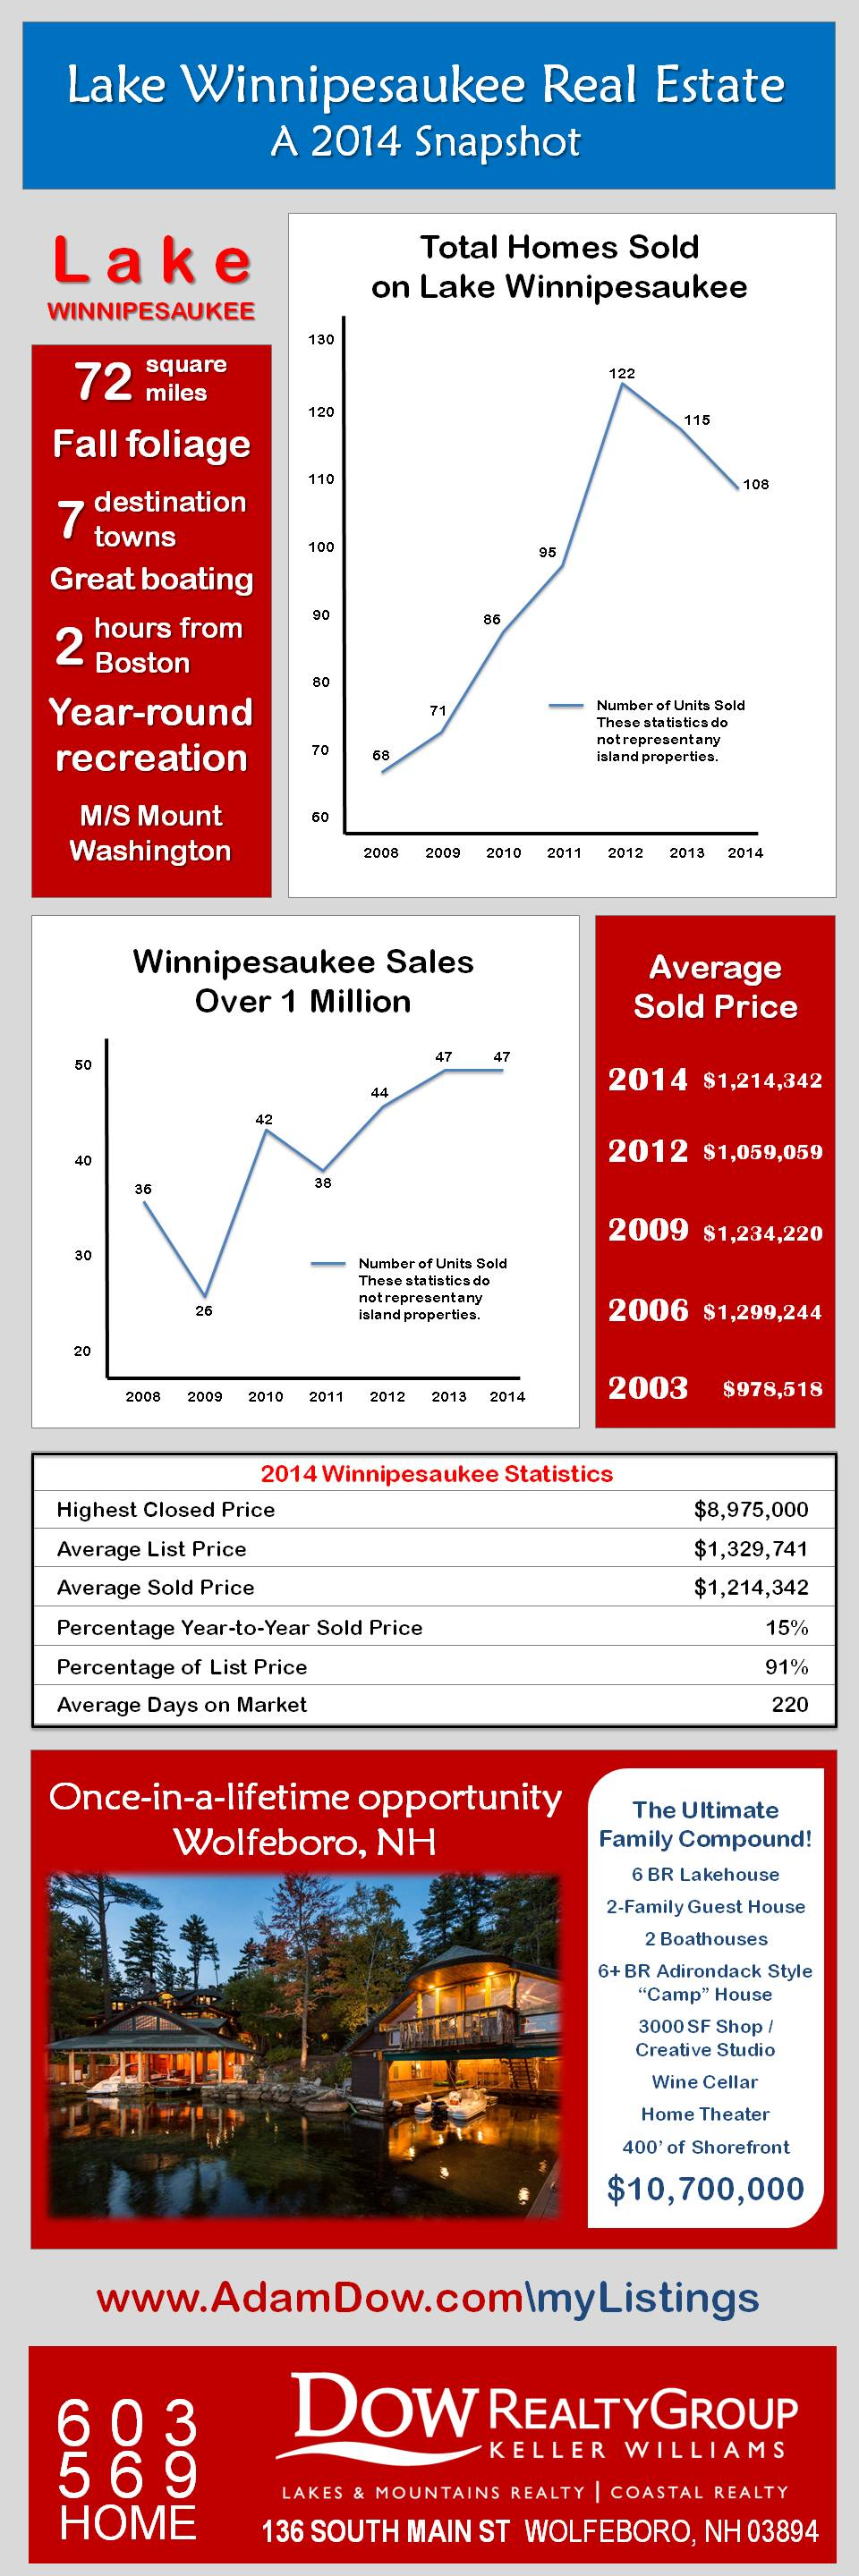 Lake Winnipesaukee Real Estate Market Data 2014